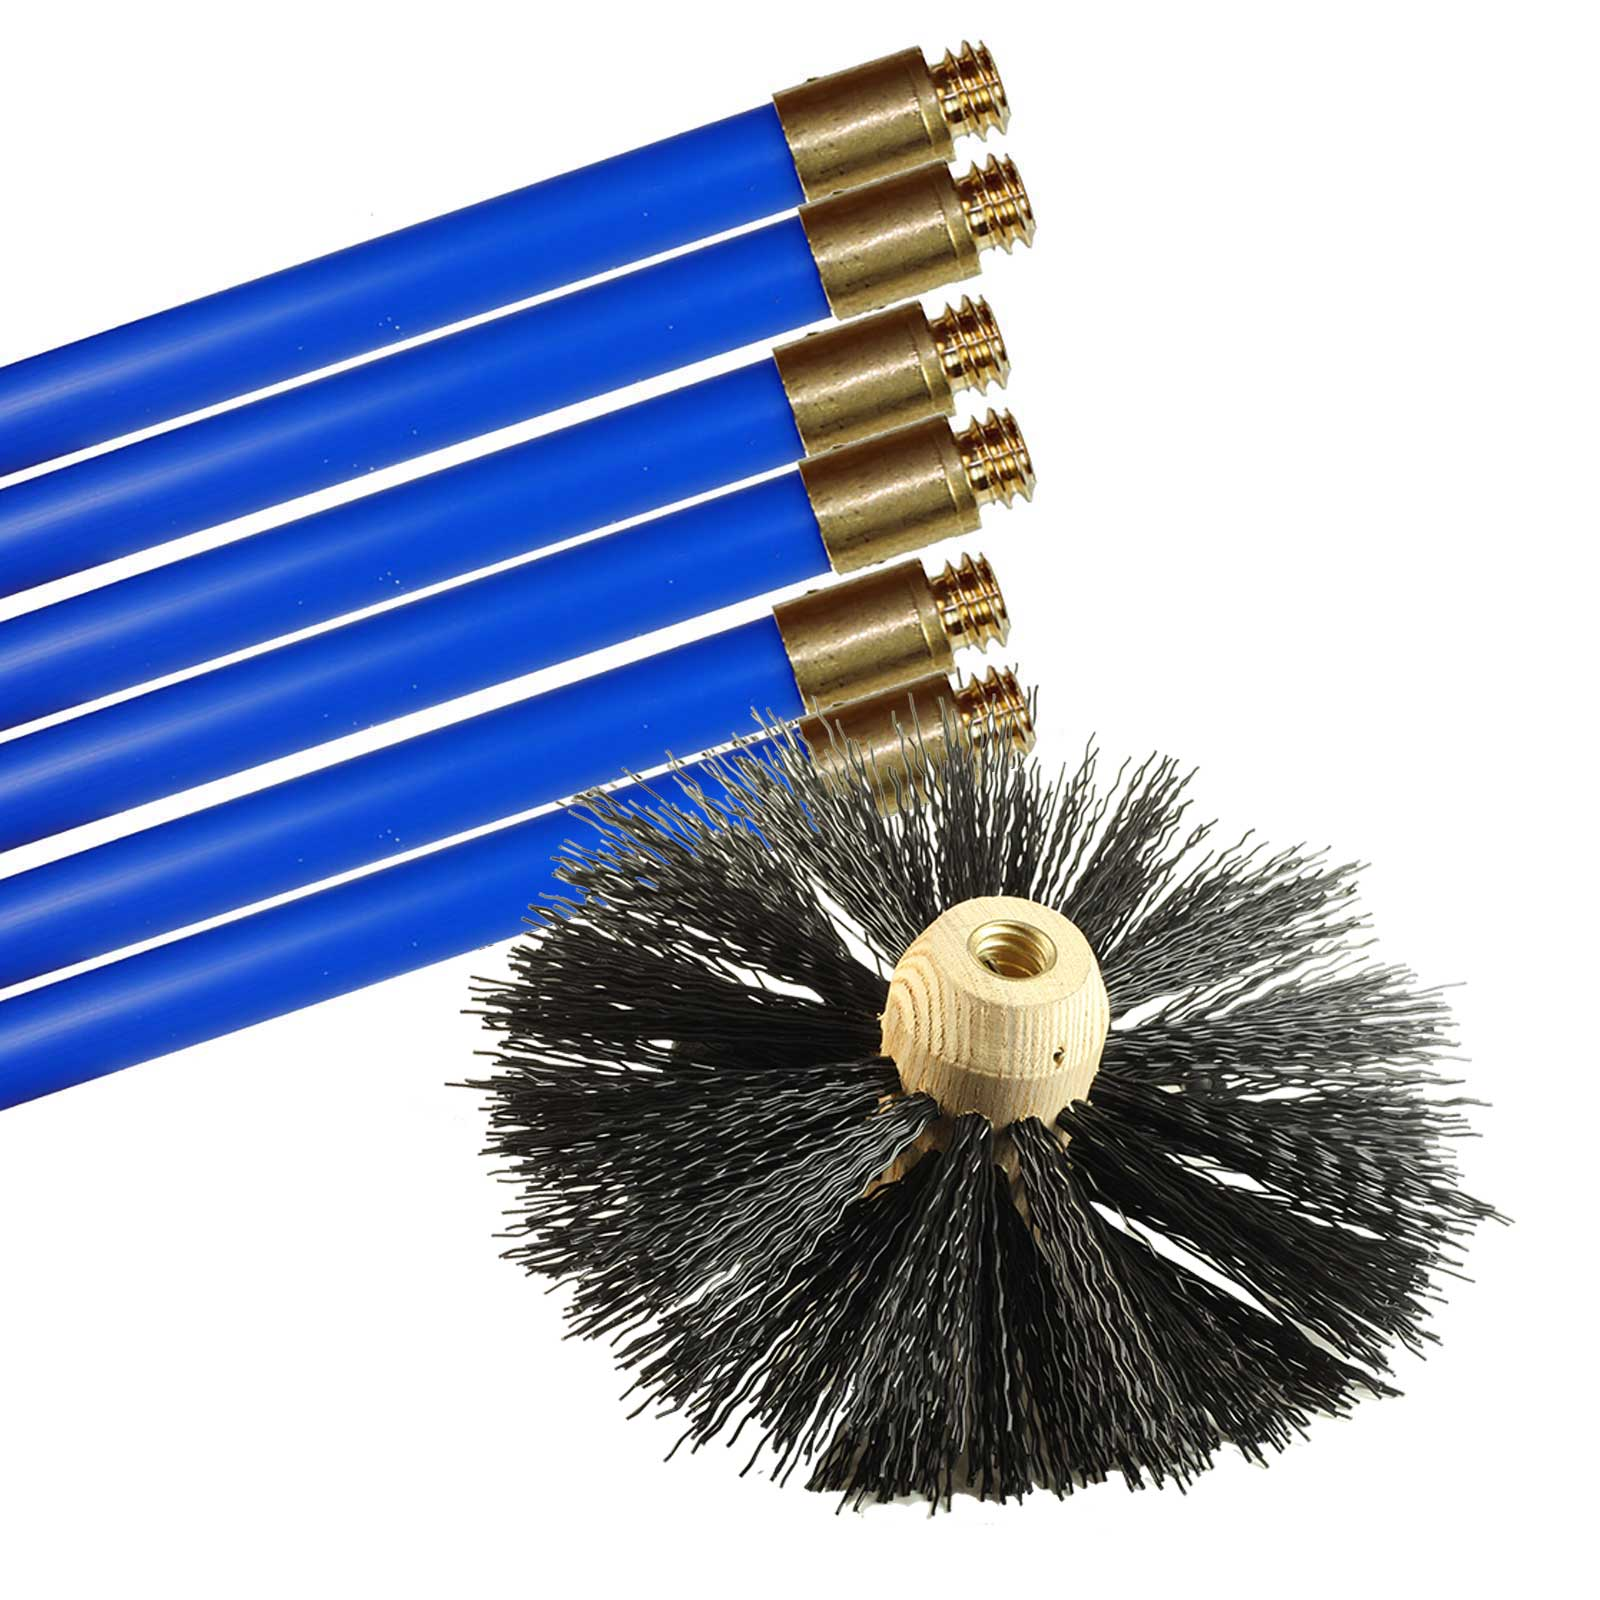 new bailey chimney cleaning set with brush and 6 rods ebay. Black Bedroom Furniture Sets. Home Design Ideas